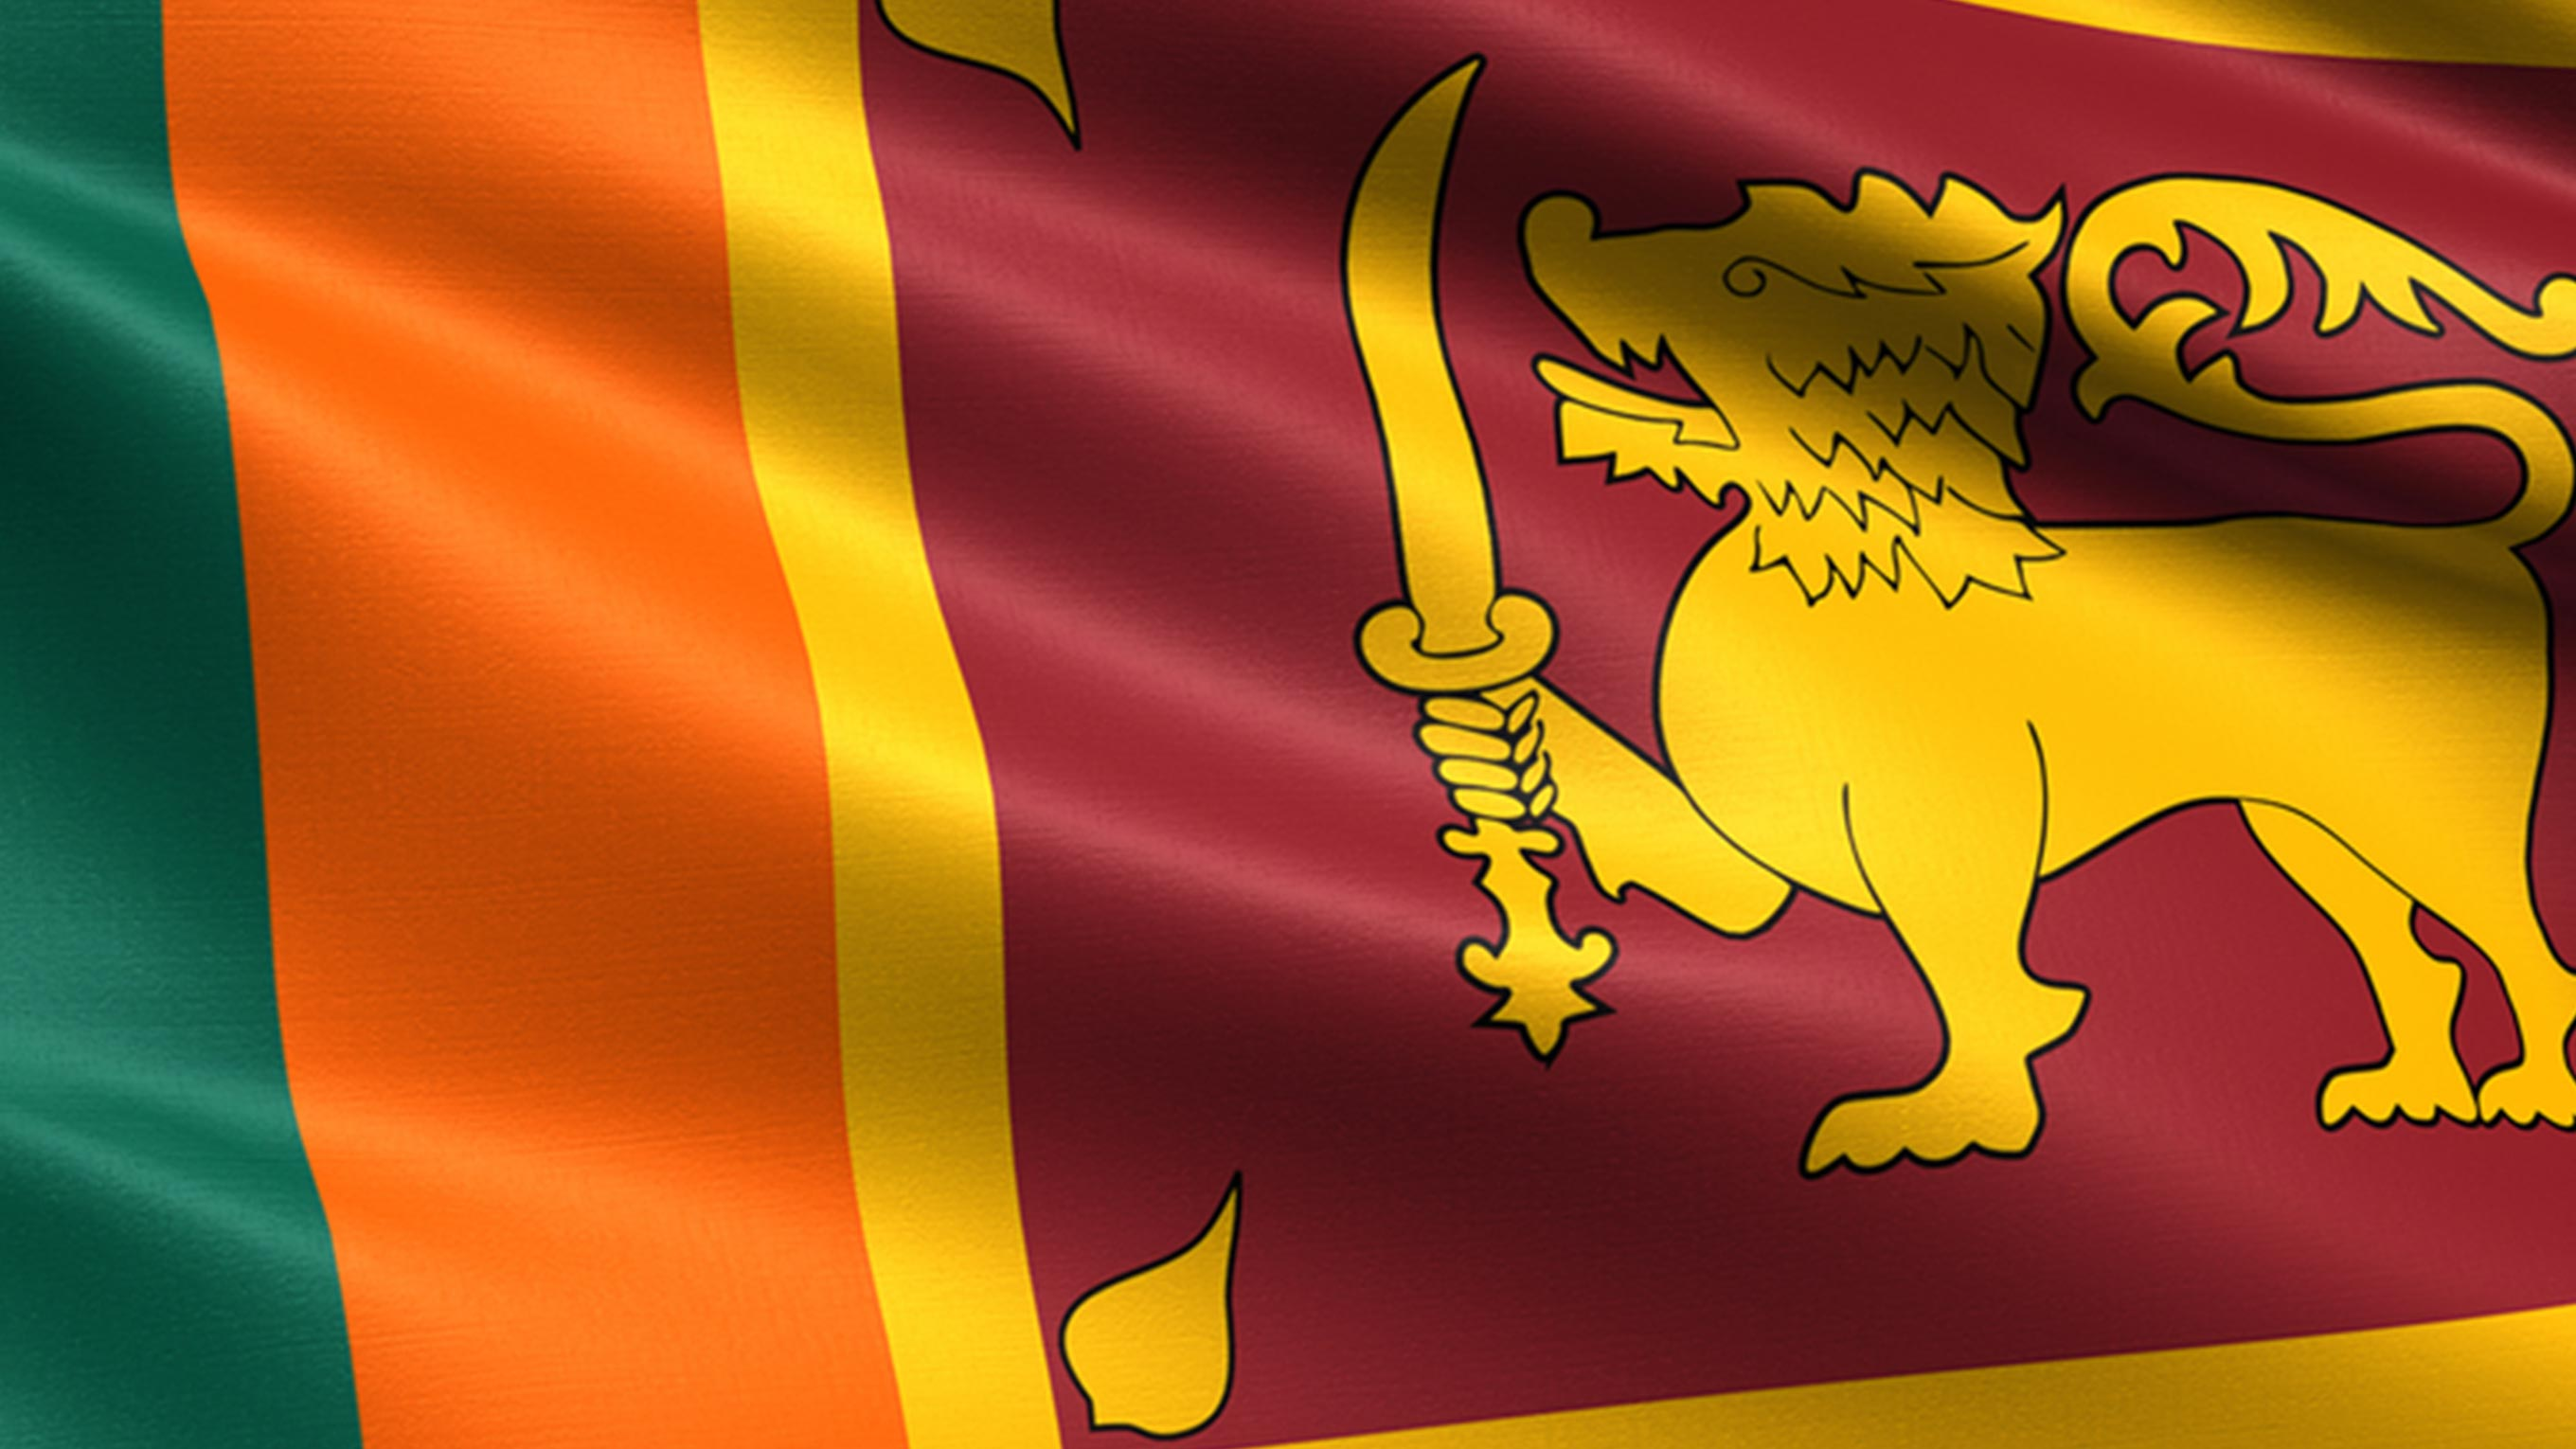 Sri Lanka: CBSL likely to raise key rates again by year-end, but may hold in Oct